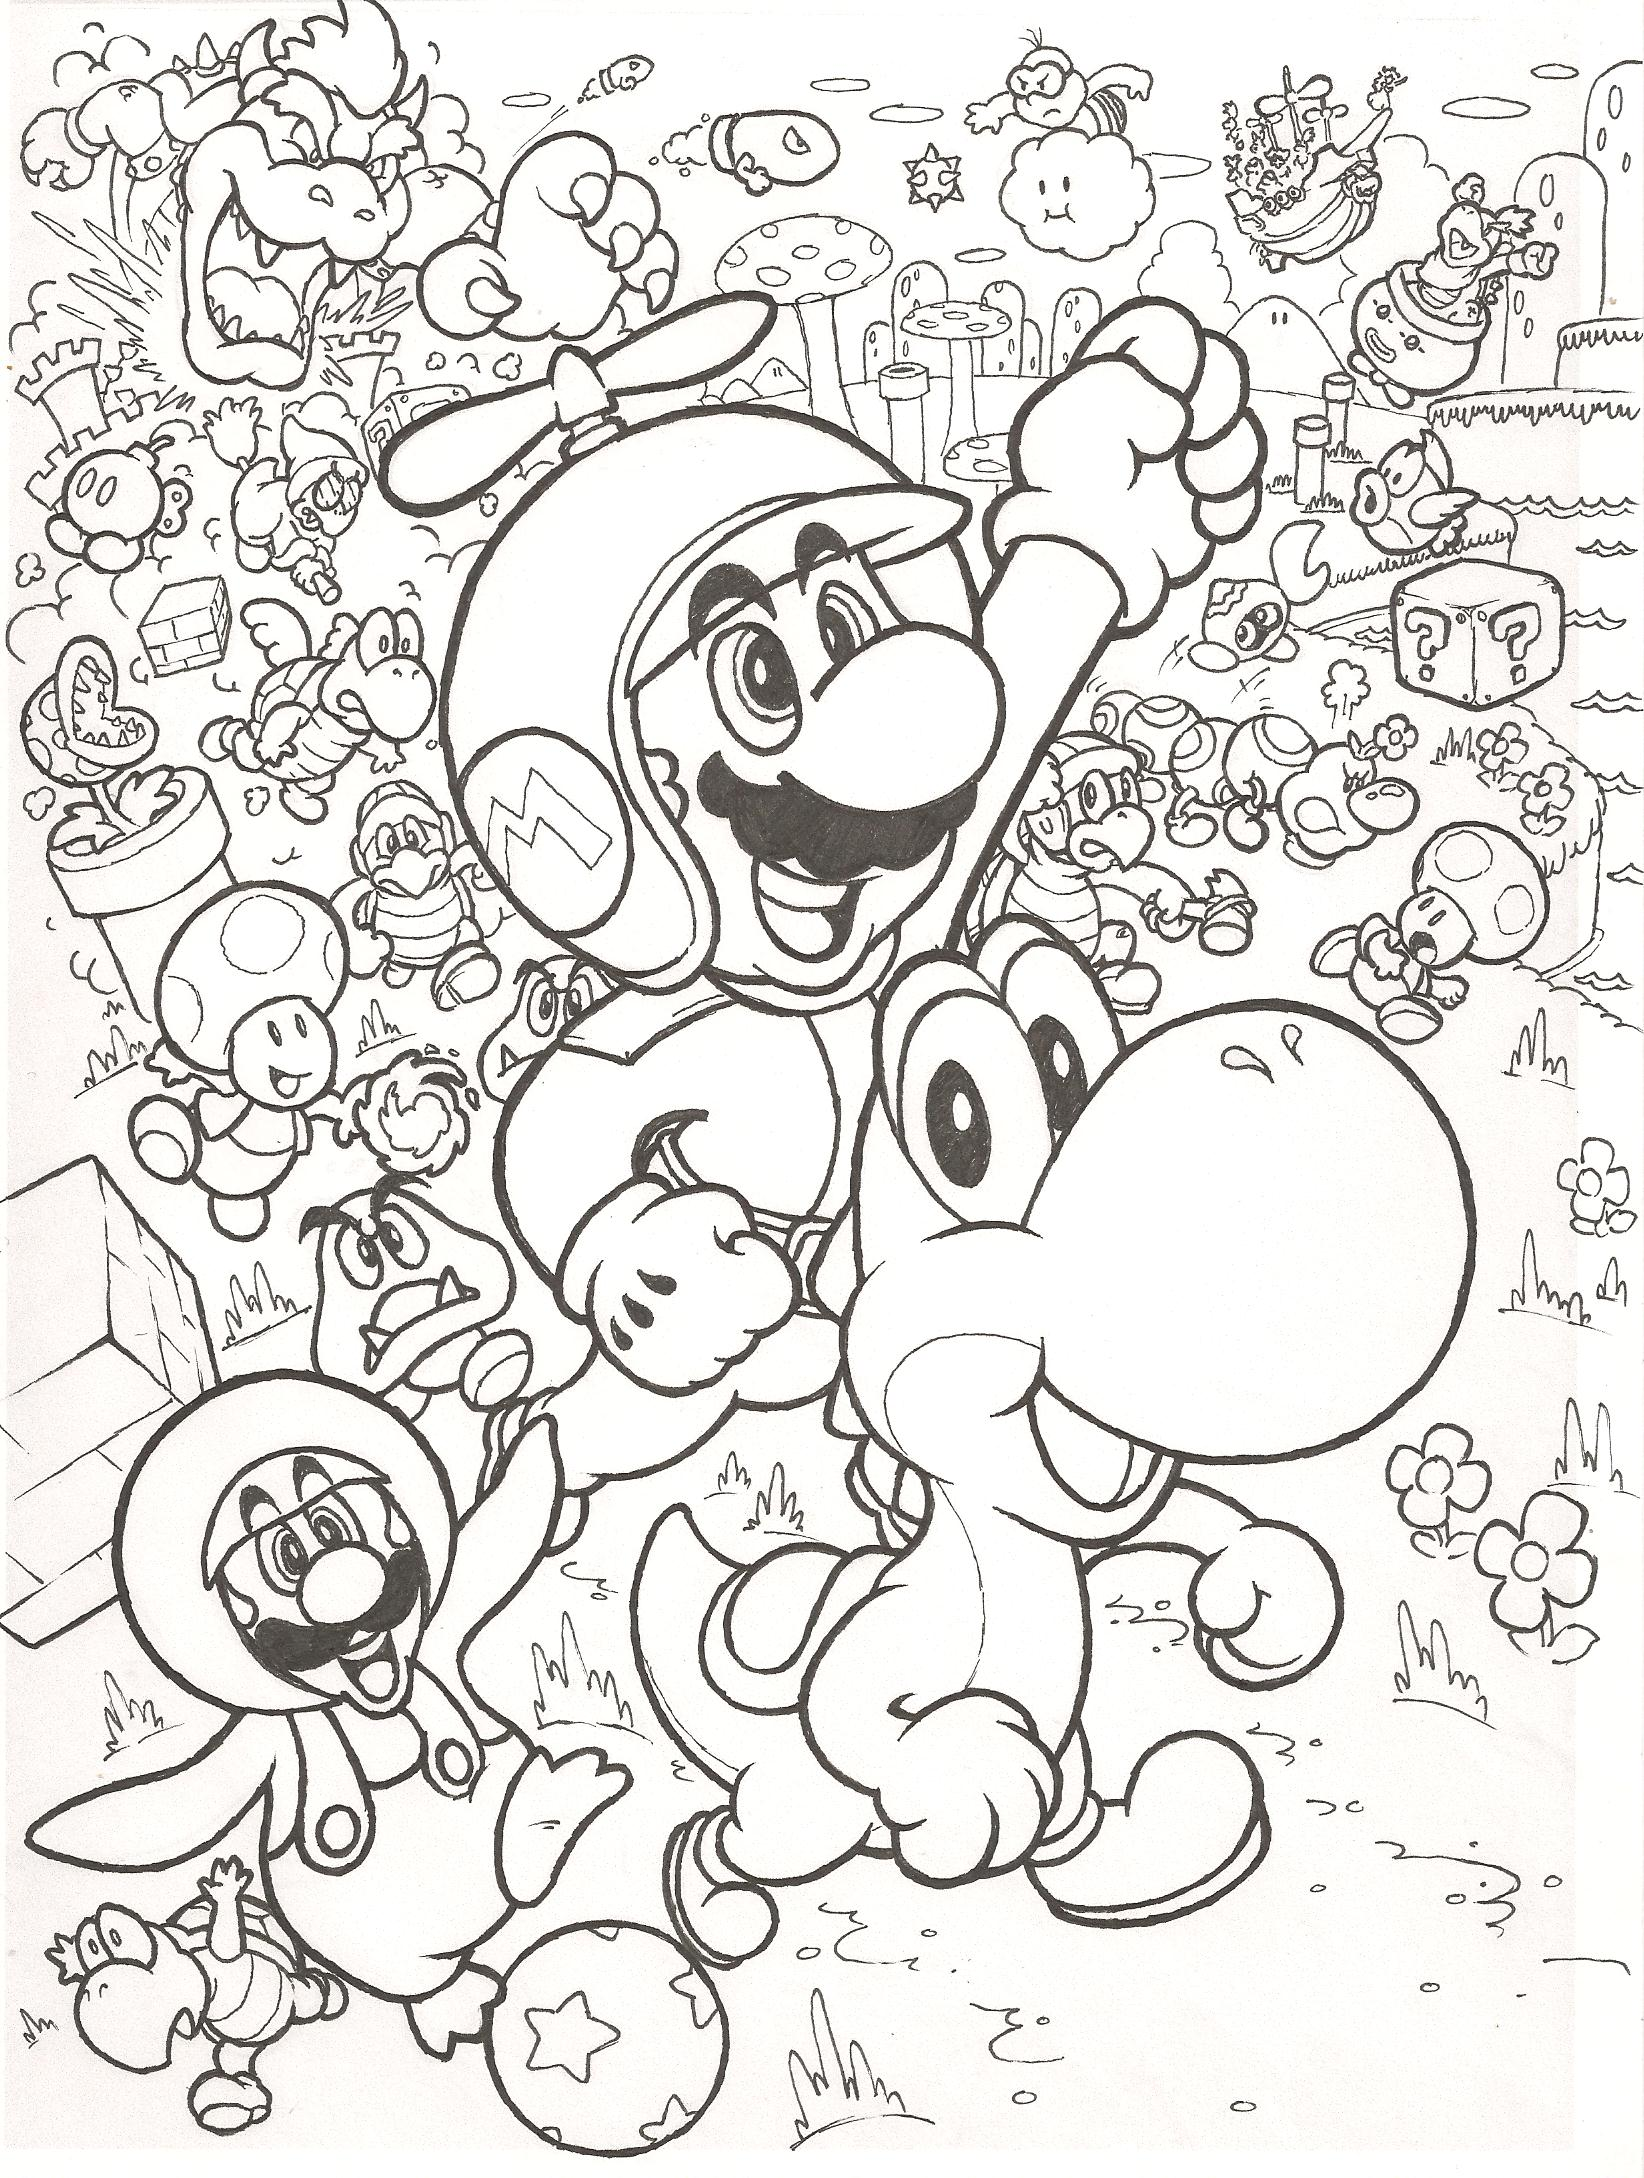 3Ds Super Smash Bros Coloring Pages - Coloring Pages For All Ages